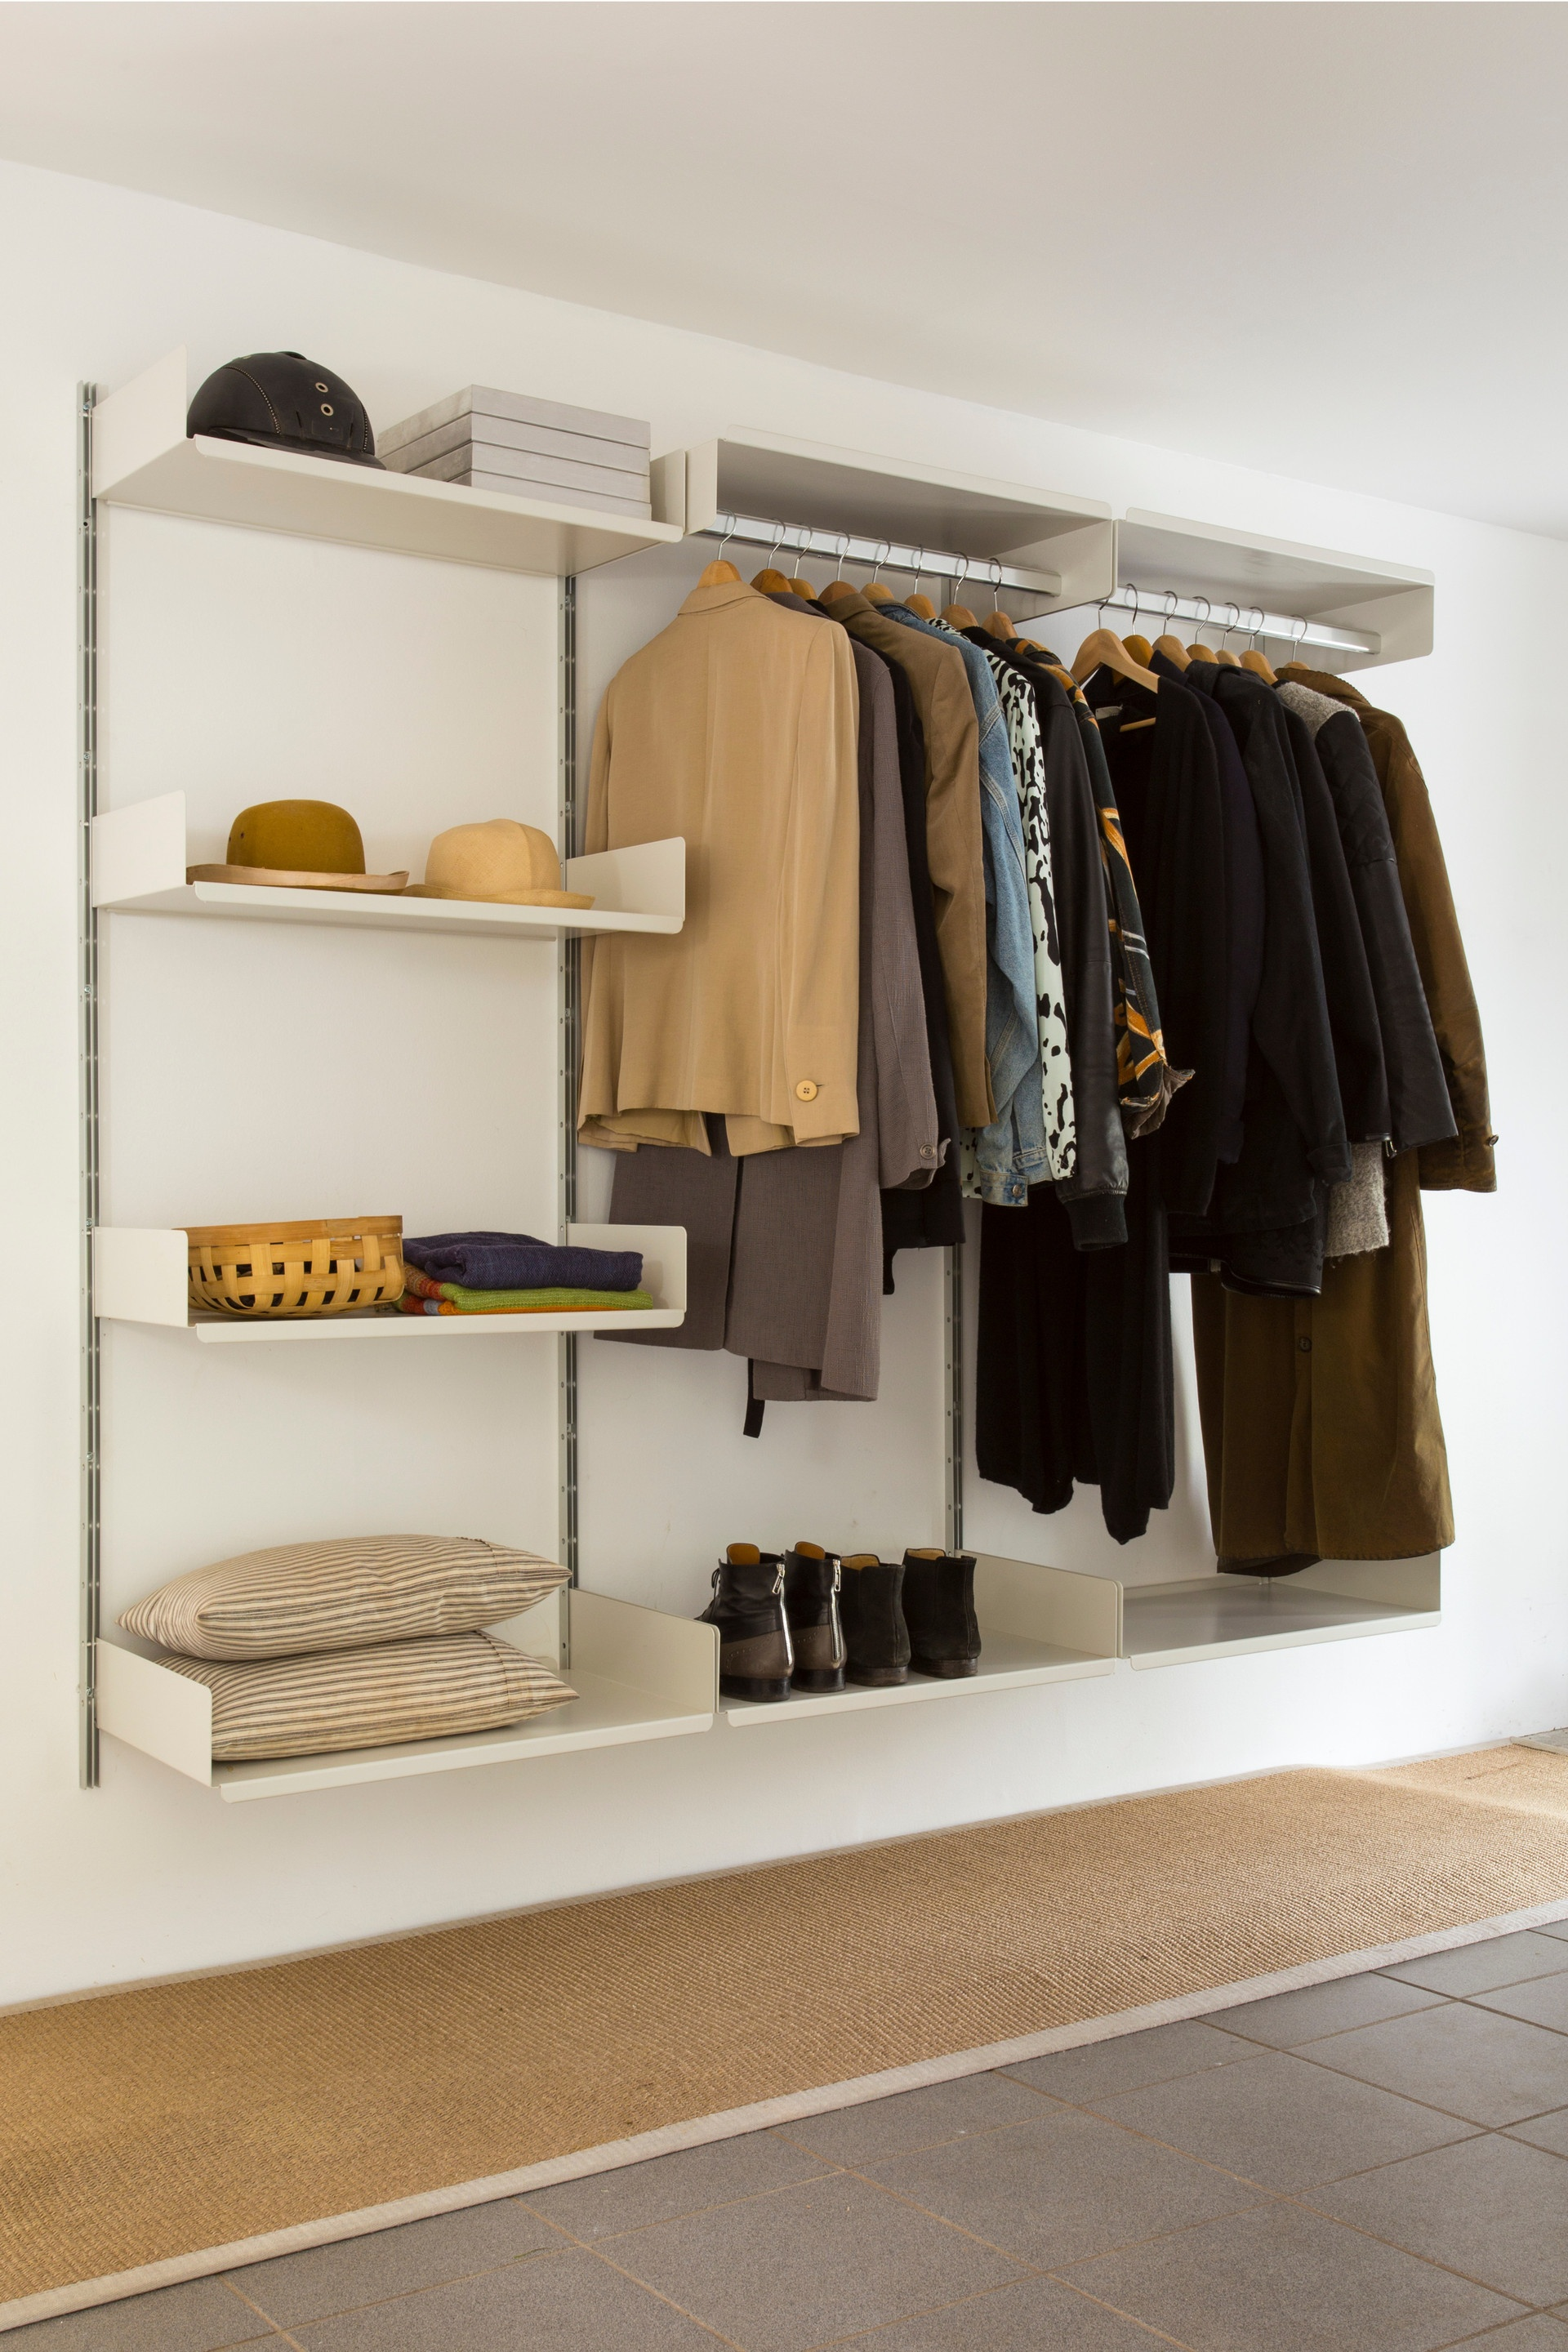 Hanging rails for coats; shelves for shoes and hats